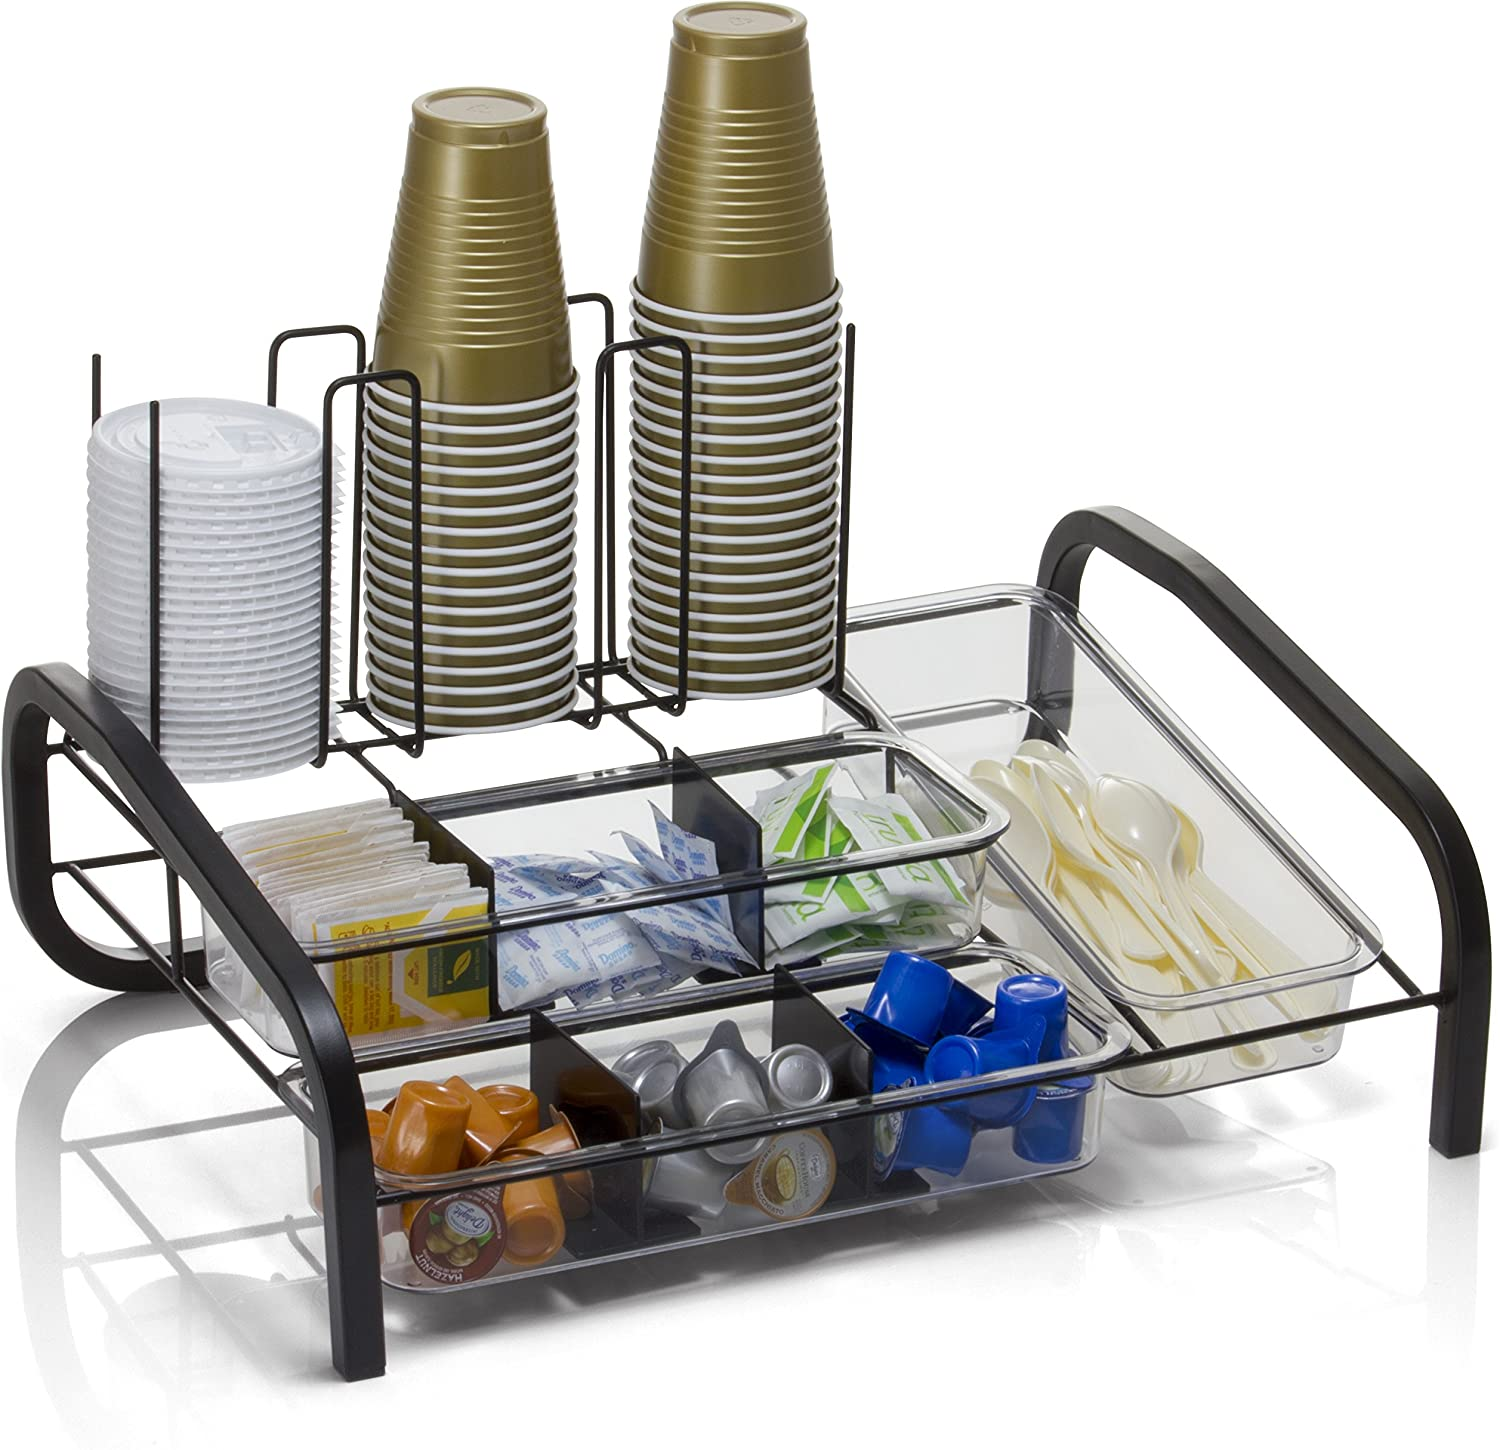 Officemate BreakCentral Multi Breakroom Organizer and Coffee Pod Holder, Black (28002)